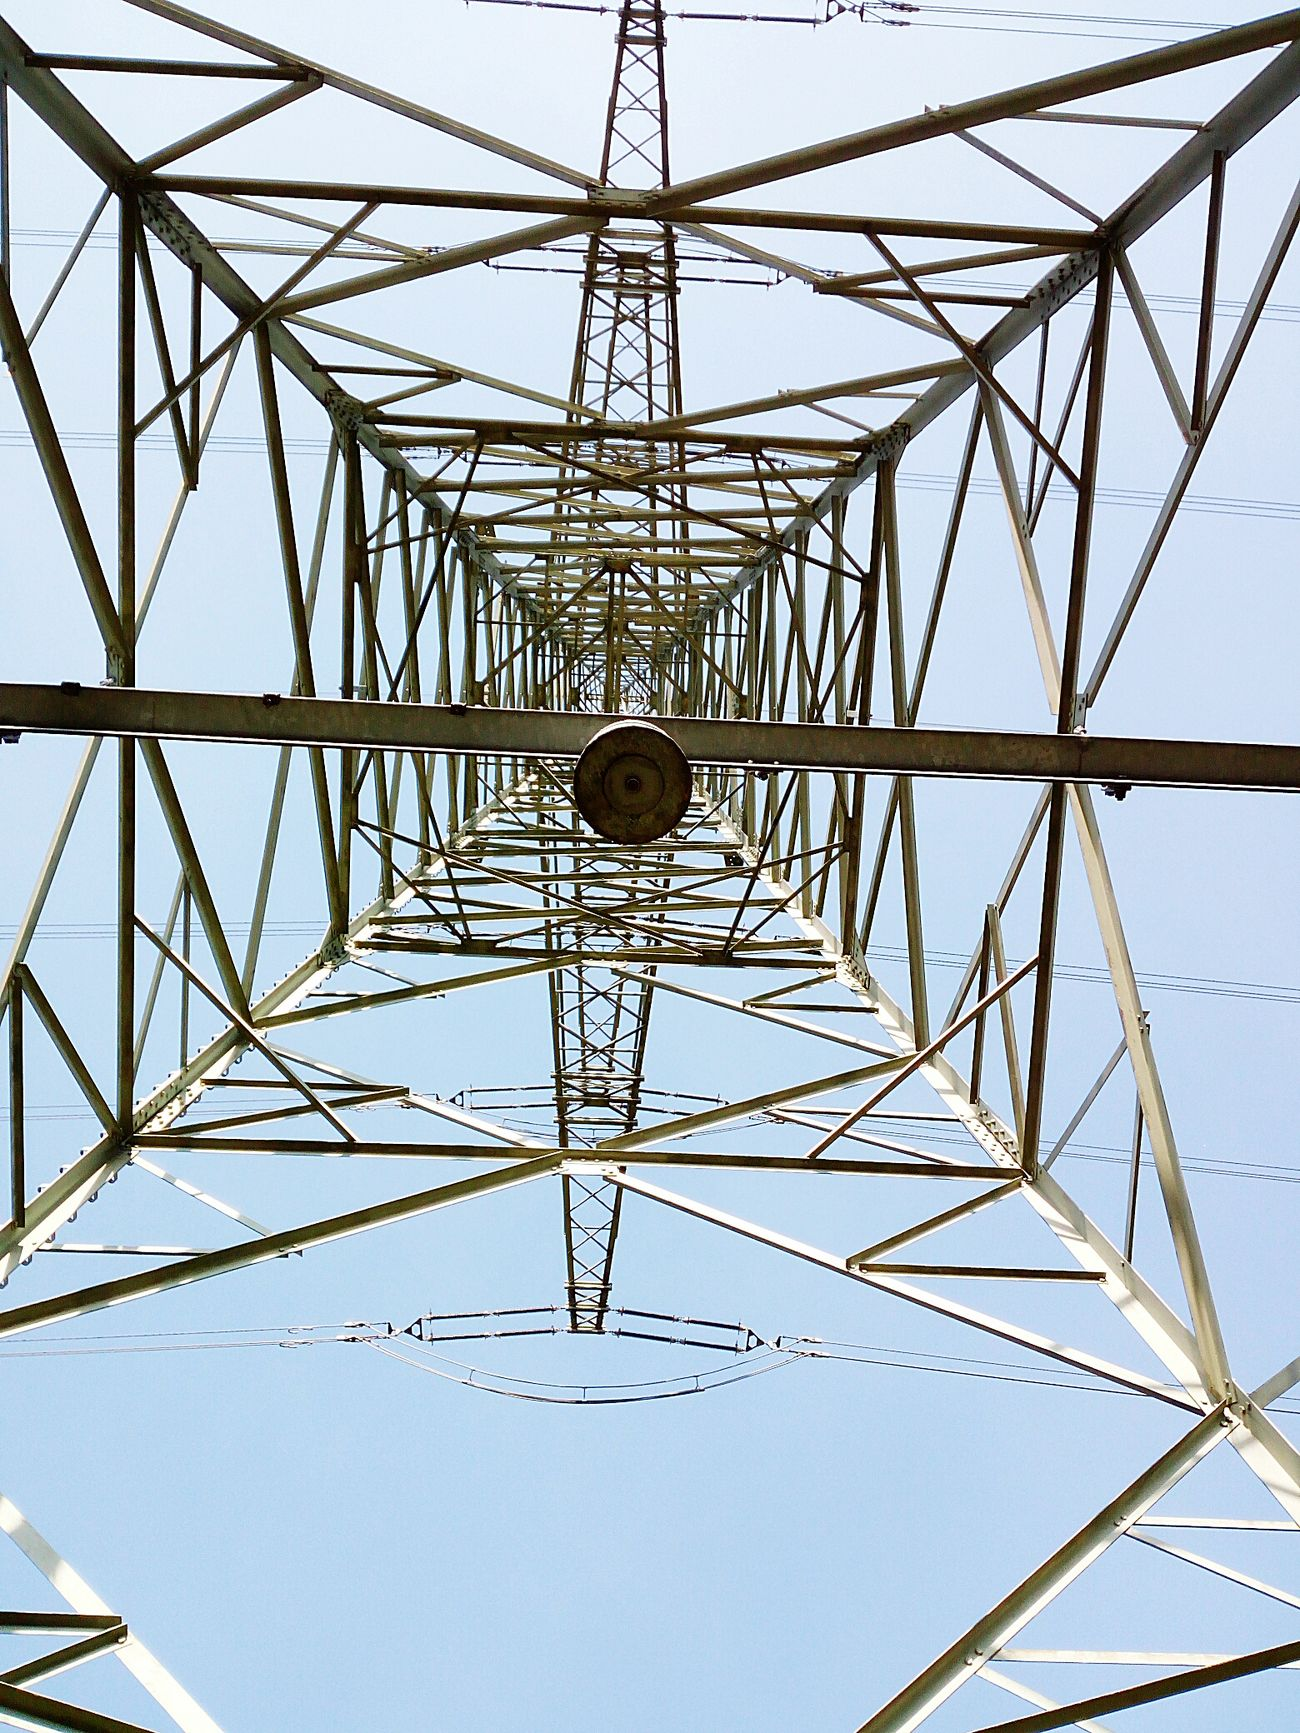 Sky Symmetry No People Nature Outdoors Electricity Pylon Day EyeEmNewHere